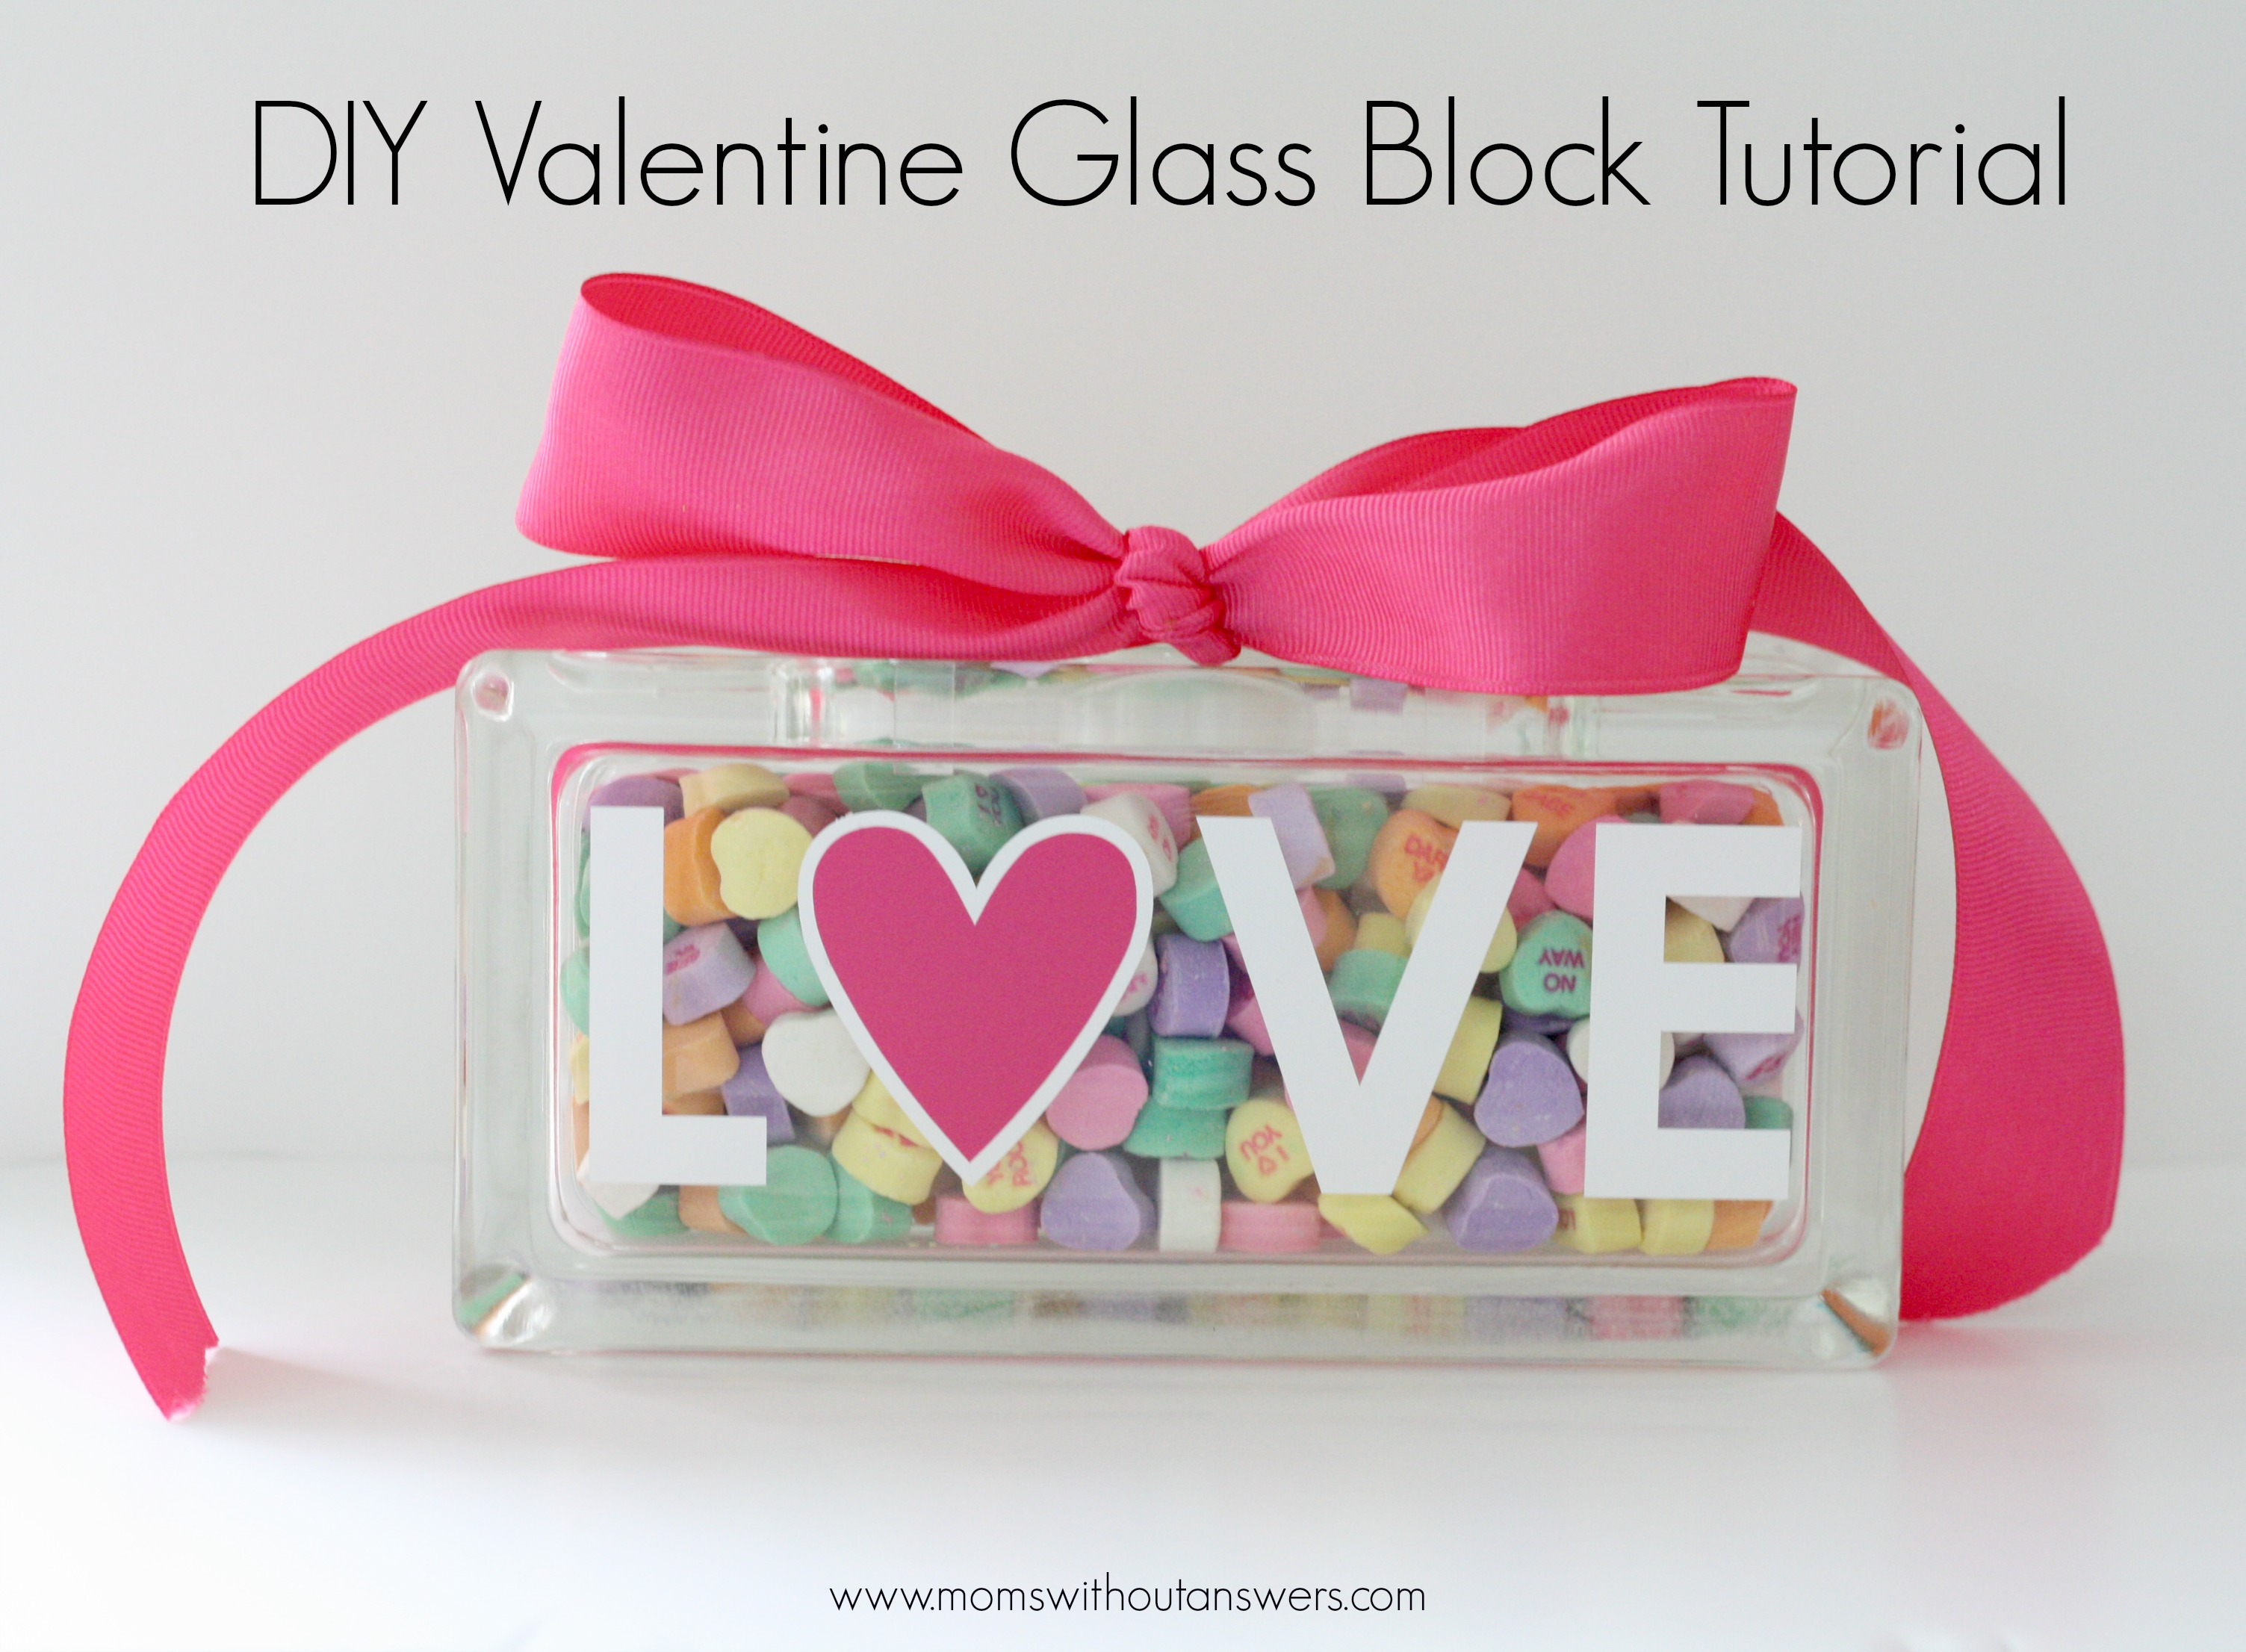 Diy valentine glass block tutorial moms without answers for Glass block for crafts